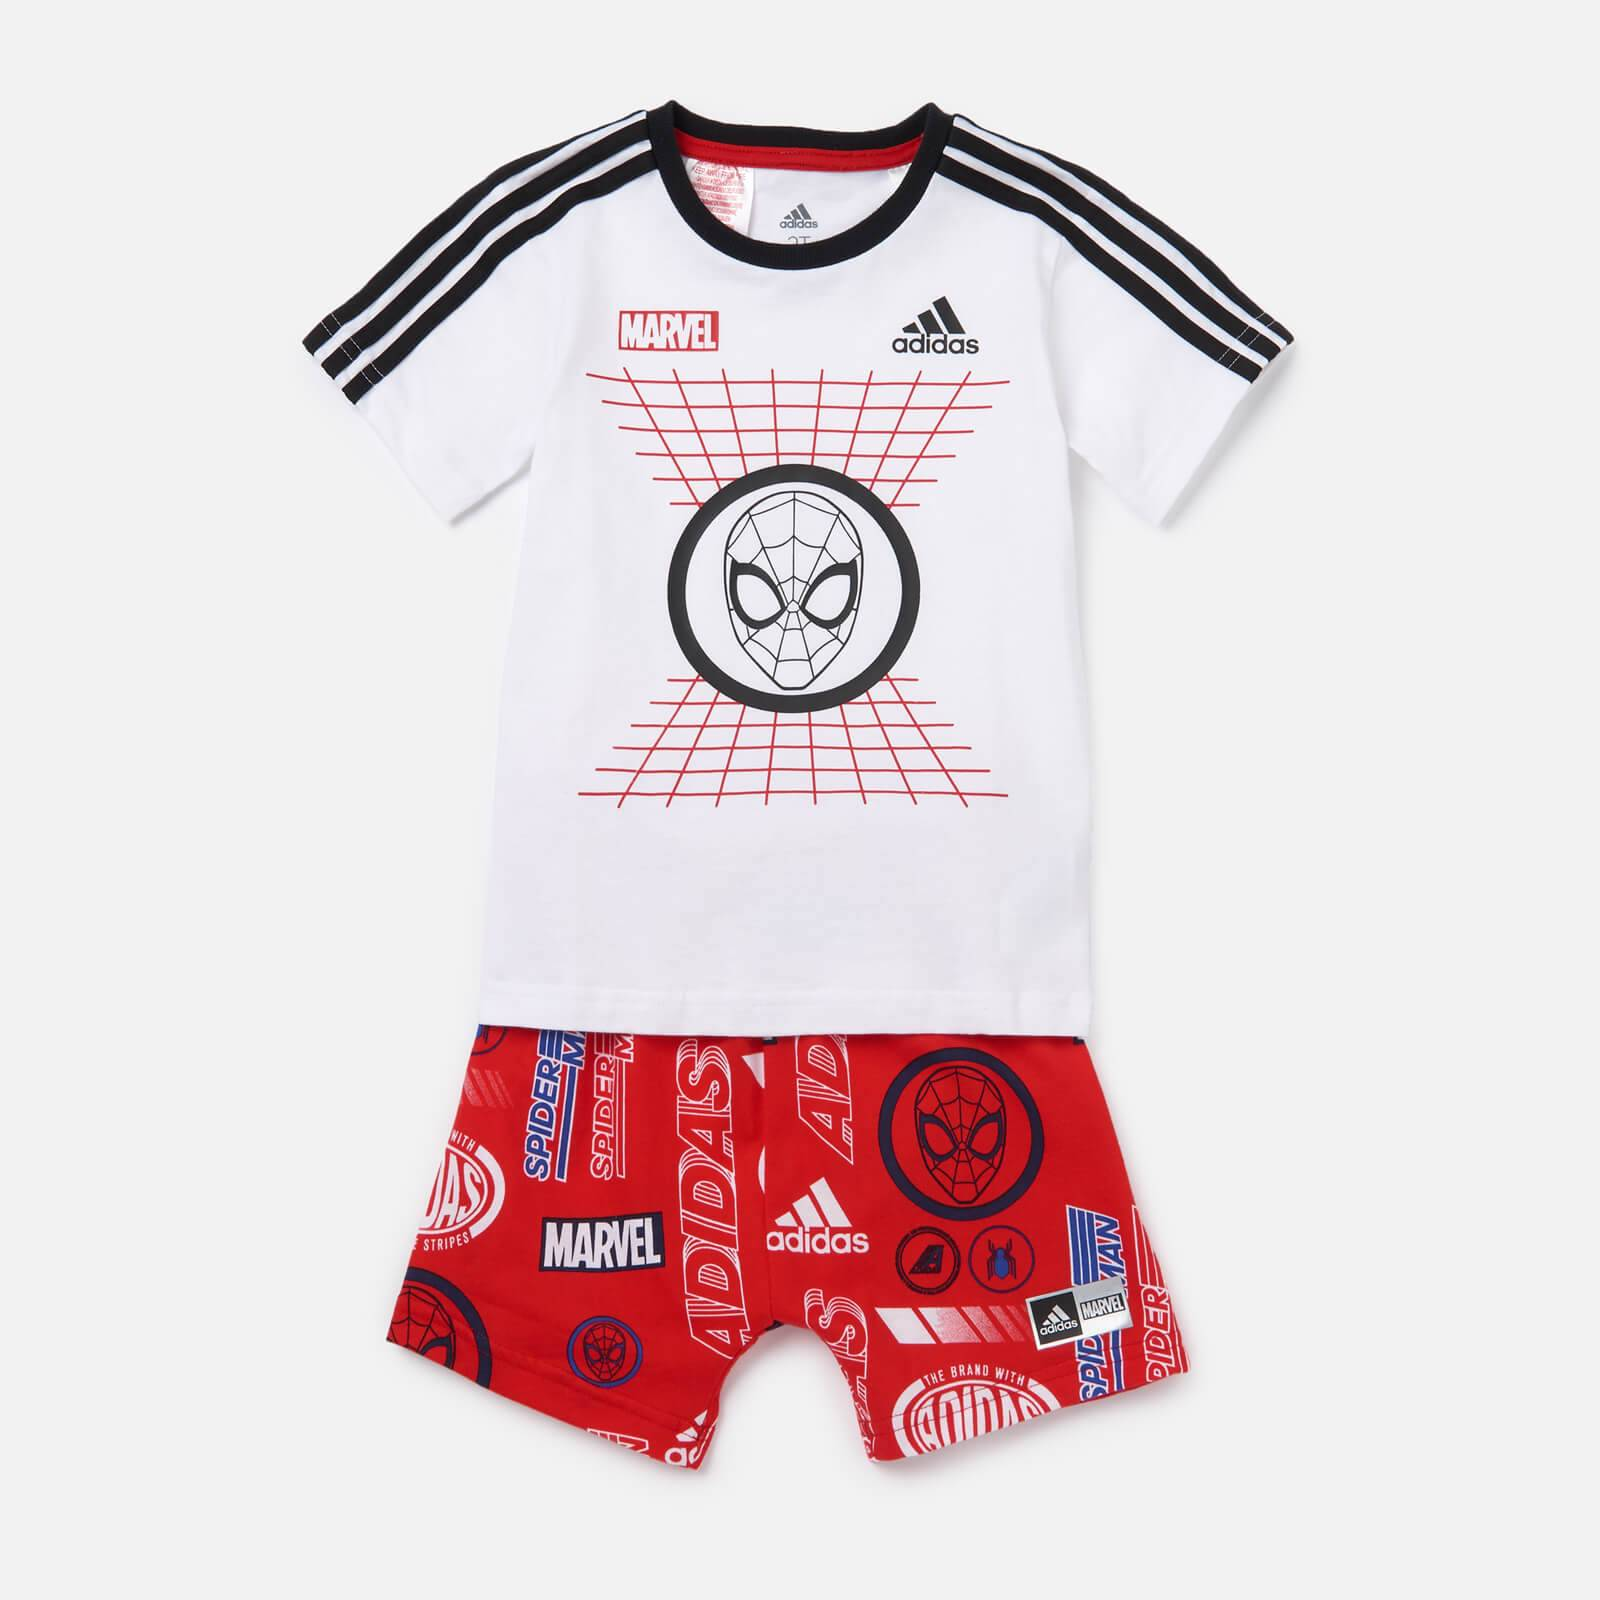 adidas Boys' Infant Dy Spider-Man T-Shirt and Short Set - White/Red - 9-12 months